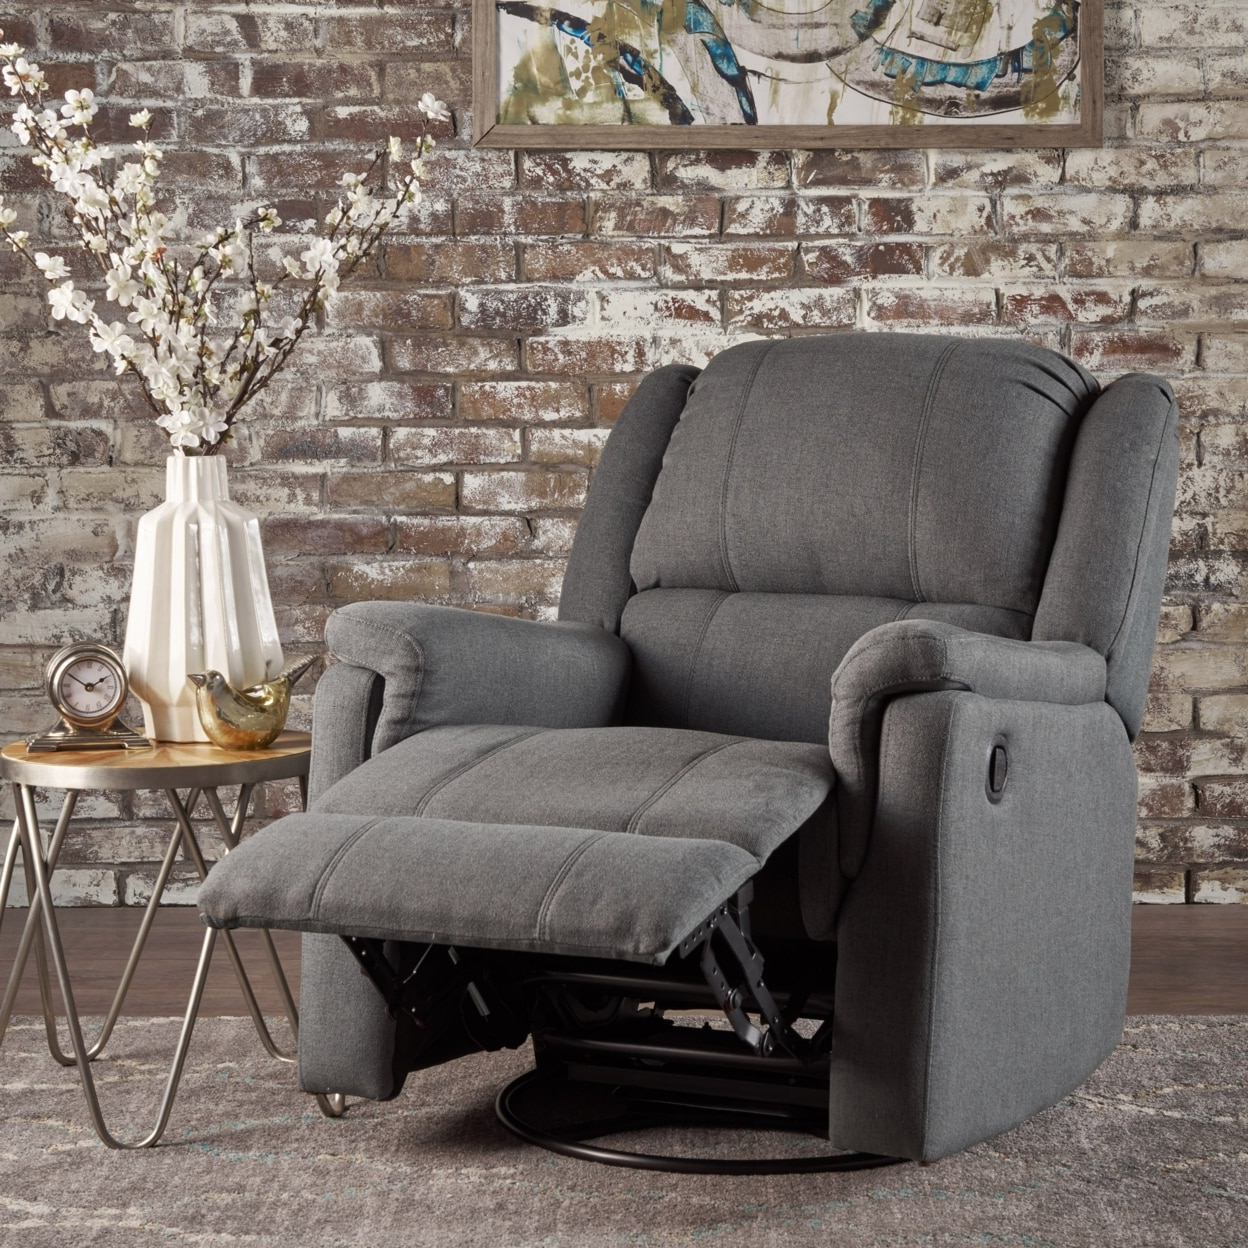 2018 Decker Ii Fabric Swivel Glider Recliners Inside Jemma Tufted Fabric Swivel Gliding Recliner Chair In Living Room (View 10 of 20)